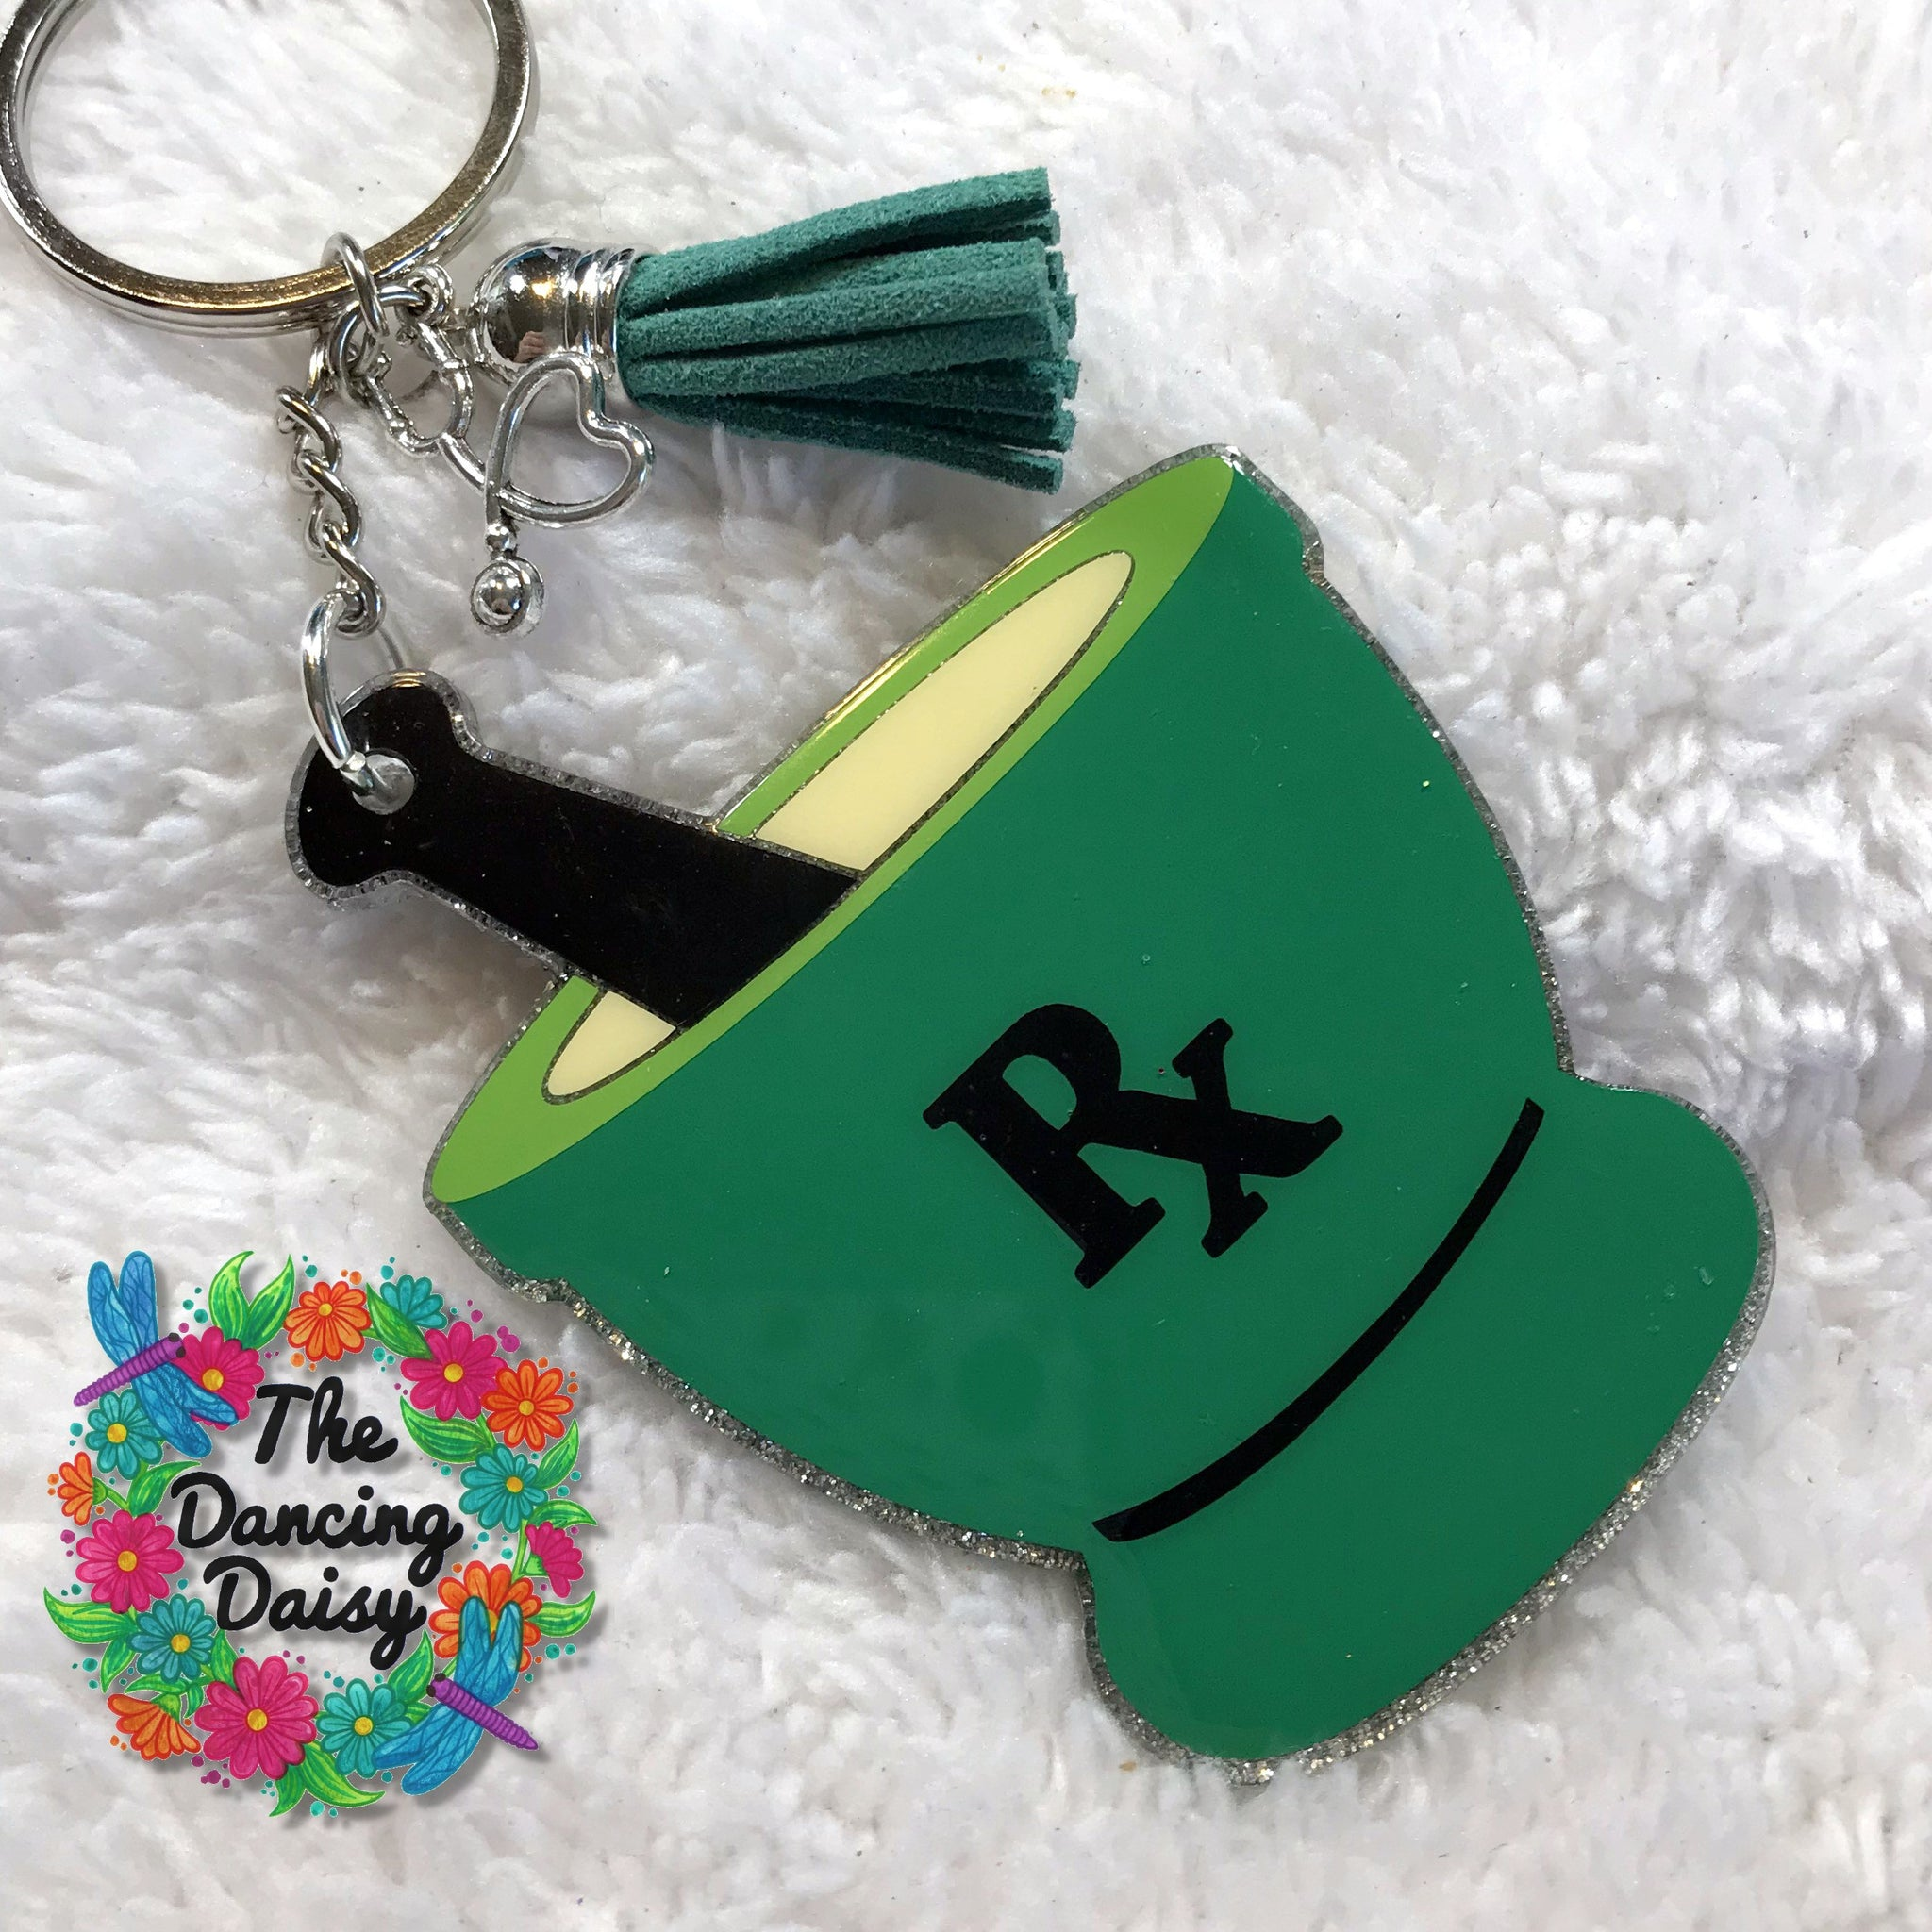 Pharmacist Mortar and Pestle RX acrylic keychain